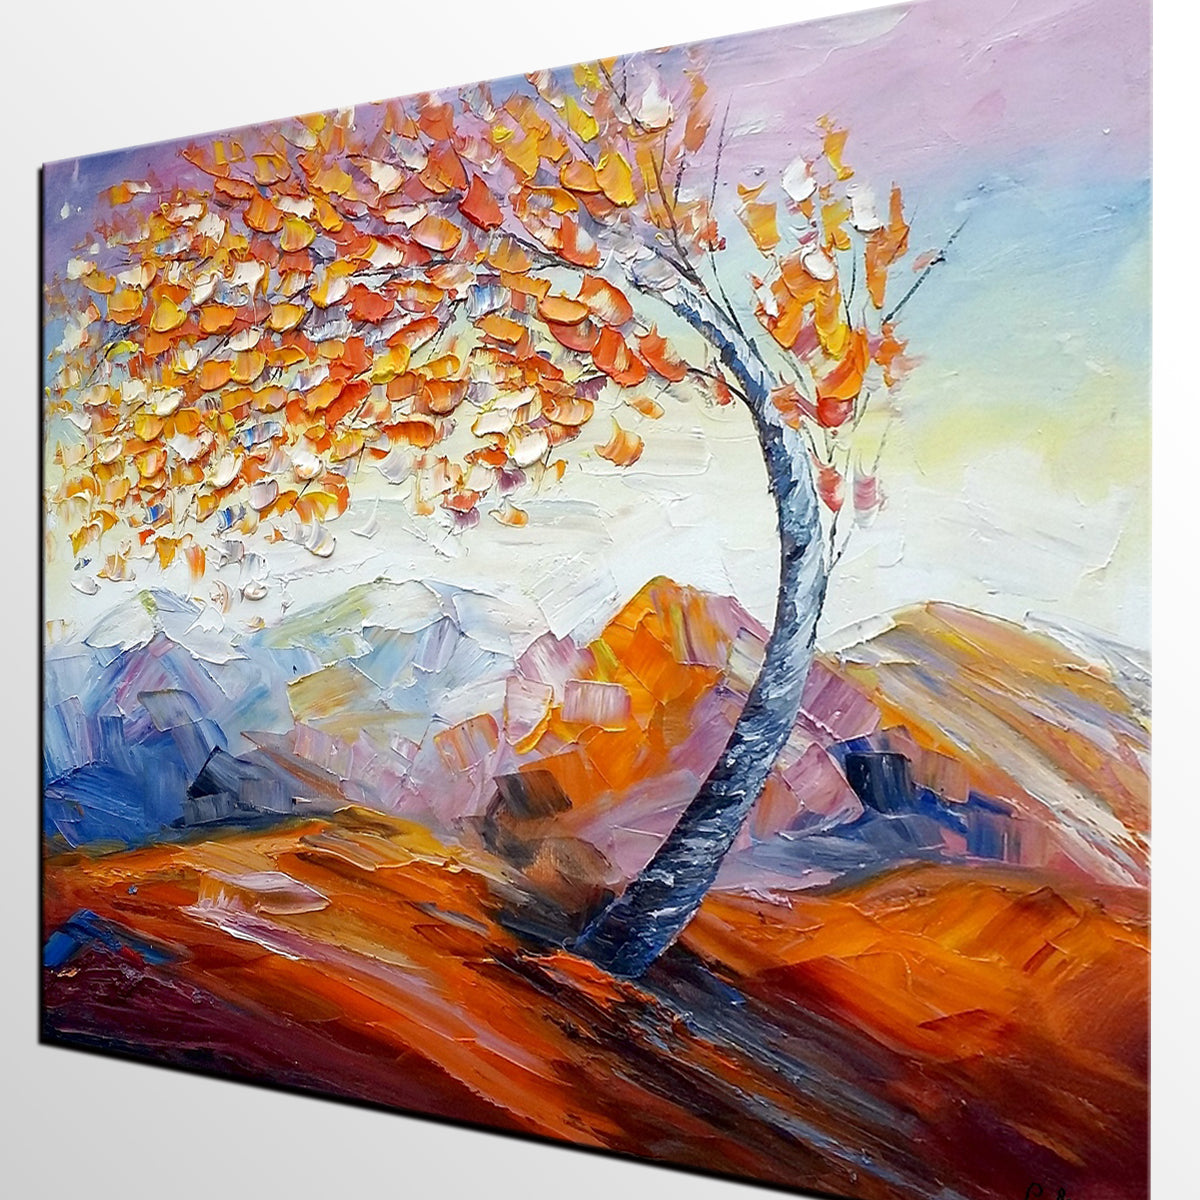 Original Art, Abstract Painting, Oil Painting, Landscape Art, Wall Art, Tree Painting, Canvas Wall Art, Abstract Art, Large Art